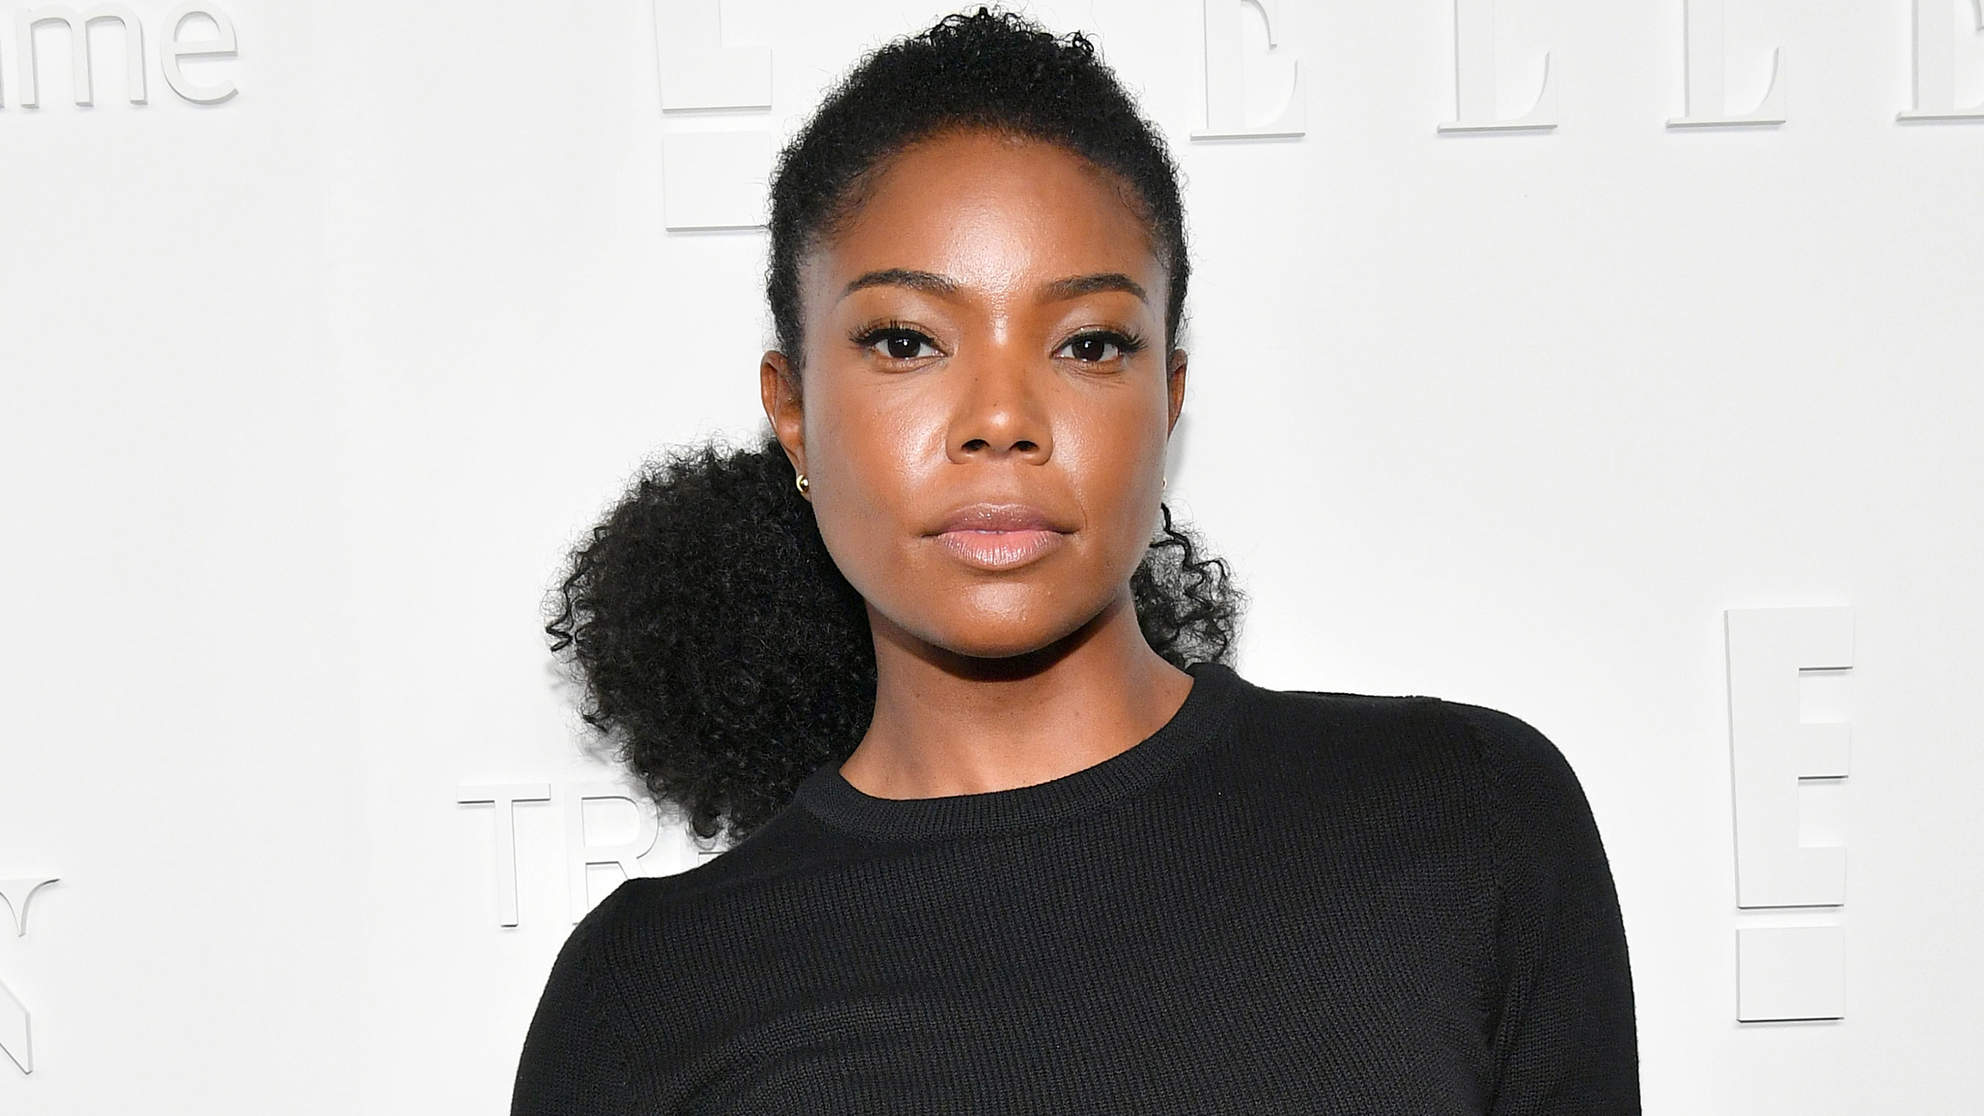 Gabrielle Union tears down preconceptions around sexual abuse victims in powerful Twitter thread